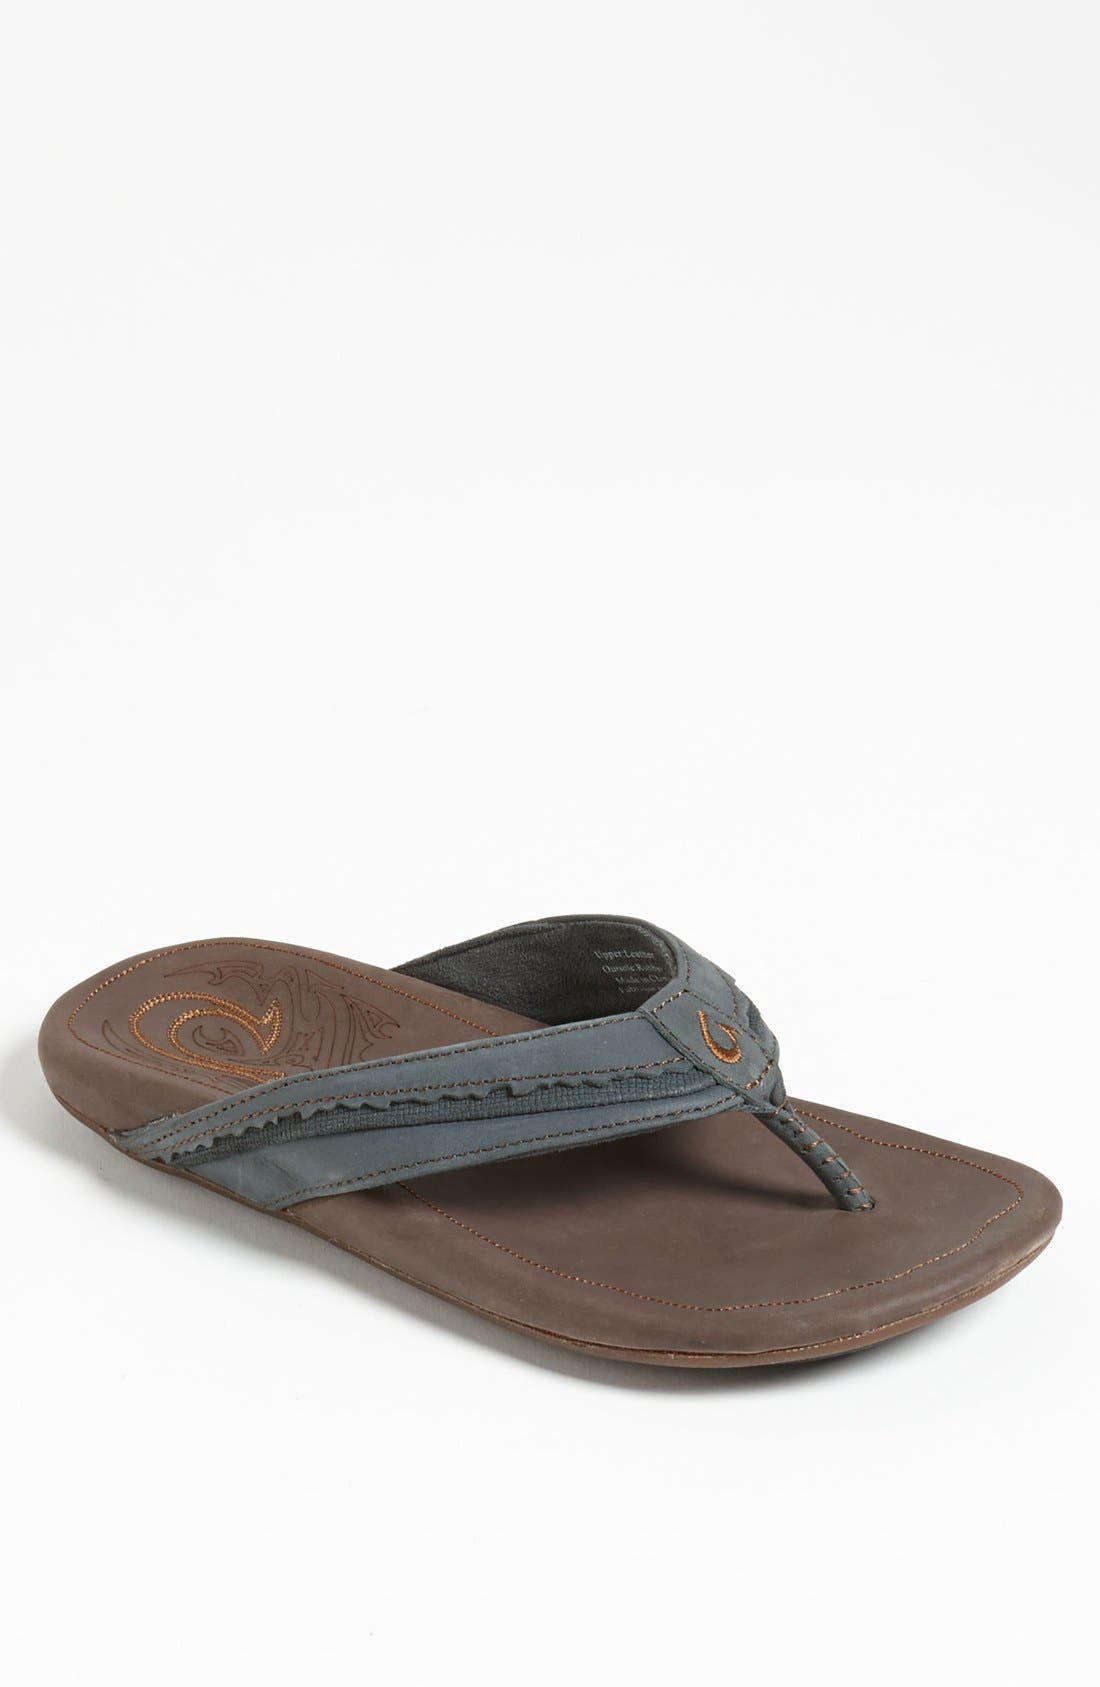 Alternate Image 1 Selected - OluKai 'Kakahi' Flip Flop (Men)